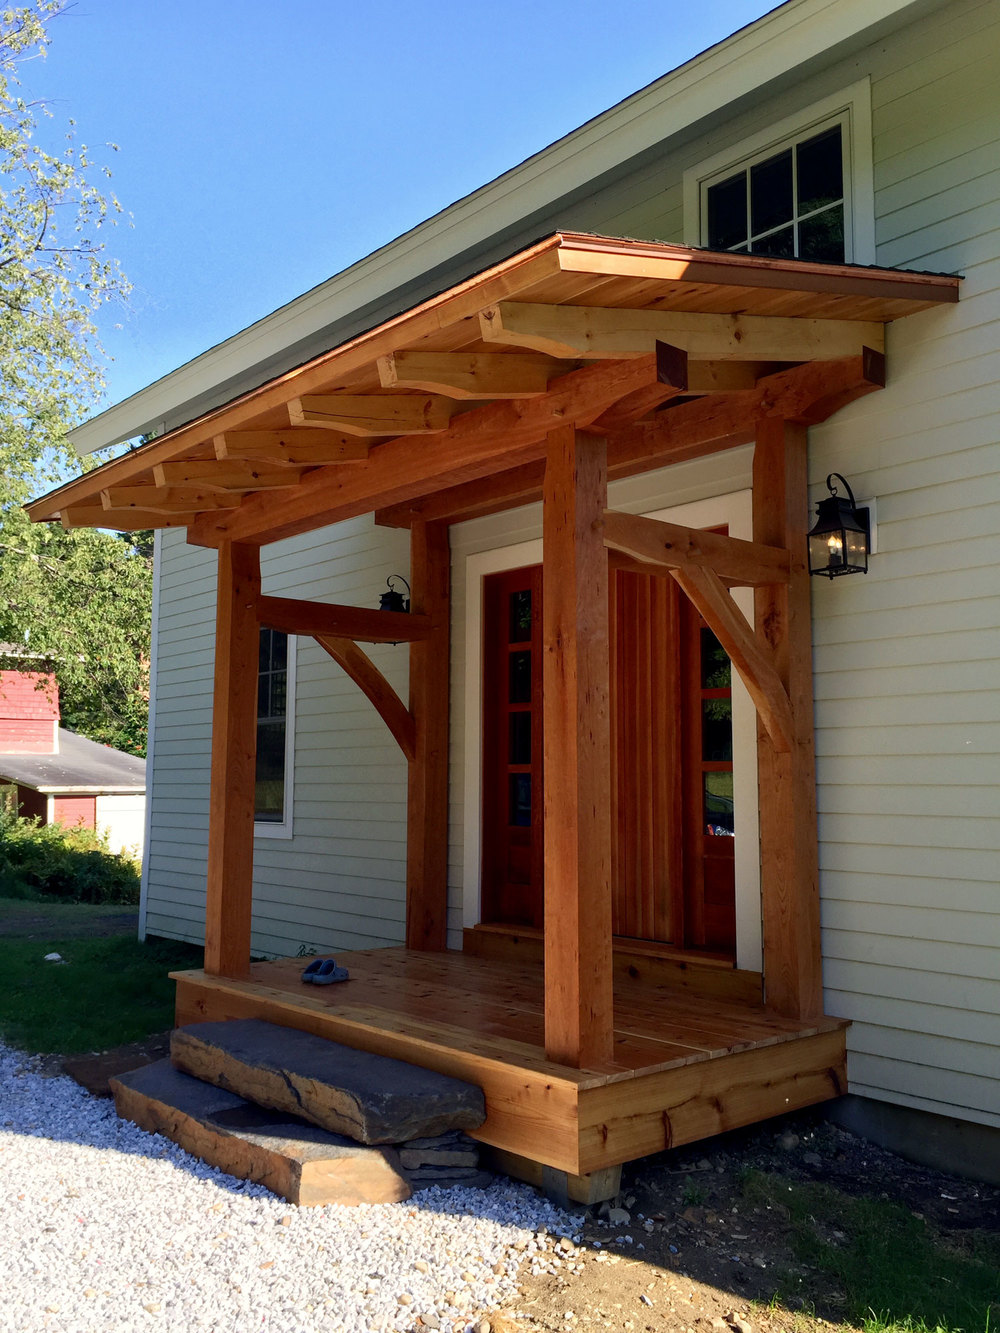 Timber framed entry porch - Berkshire Mountain Design Build, LLC